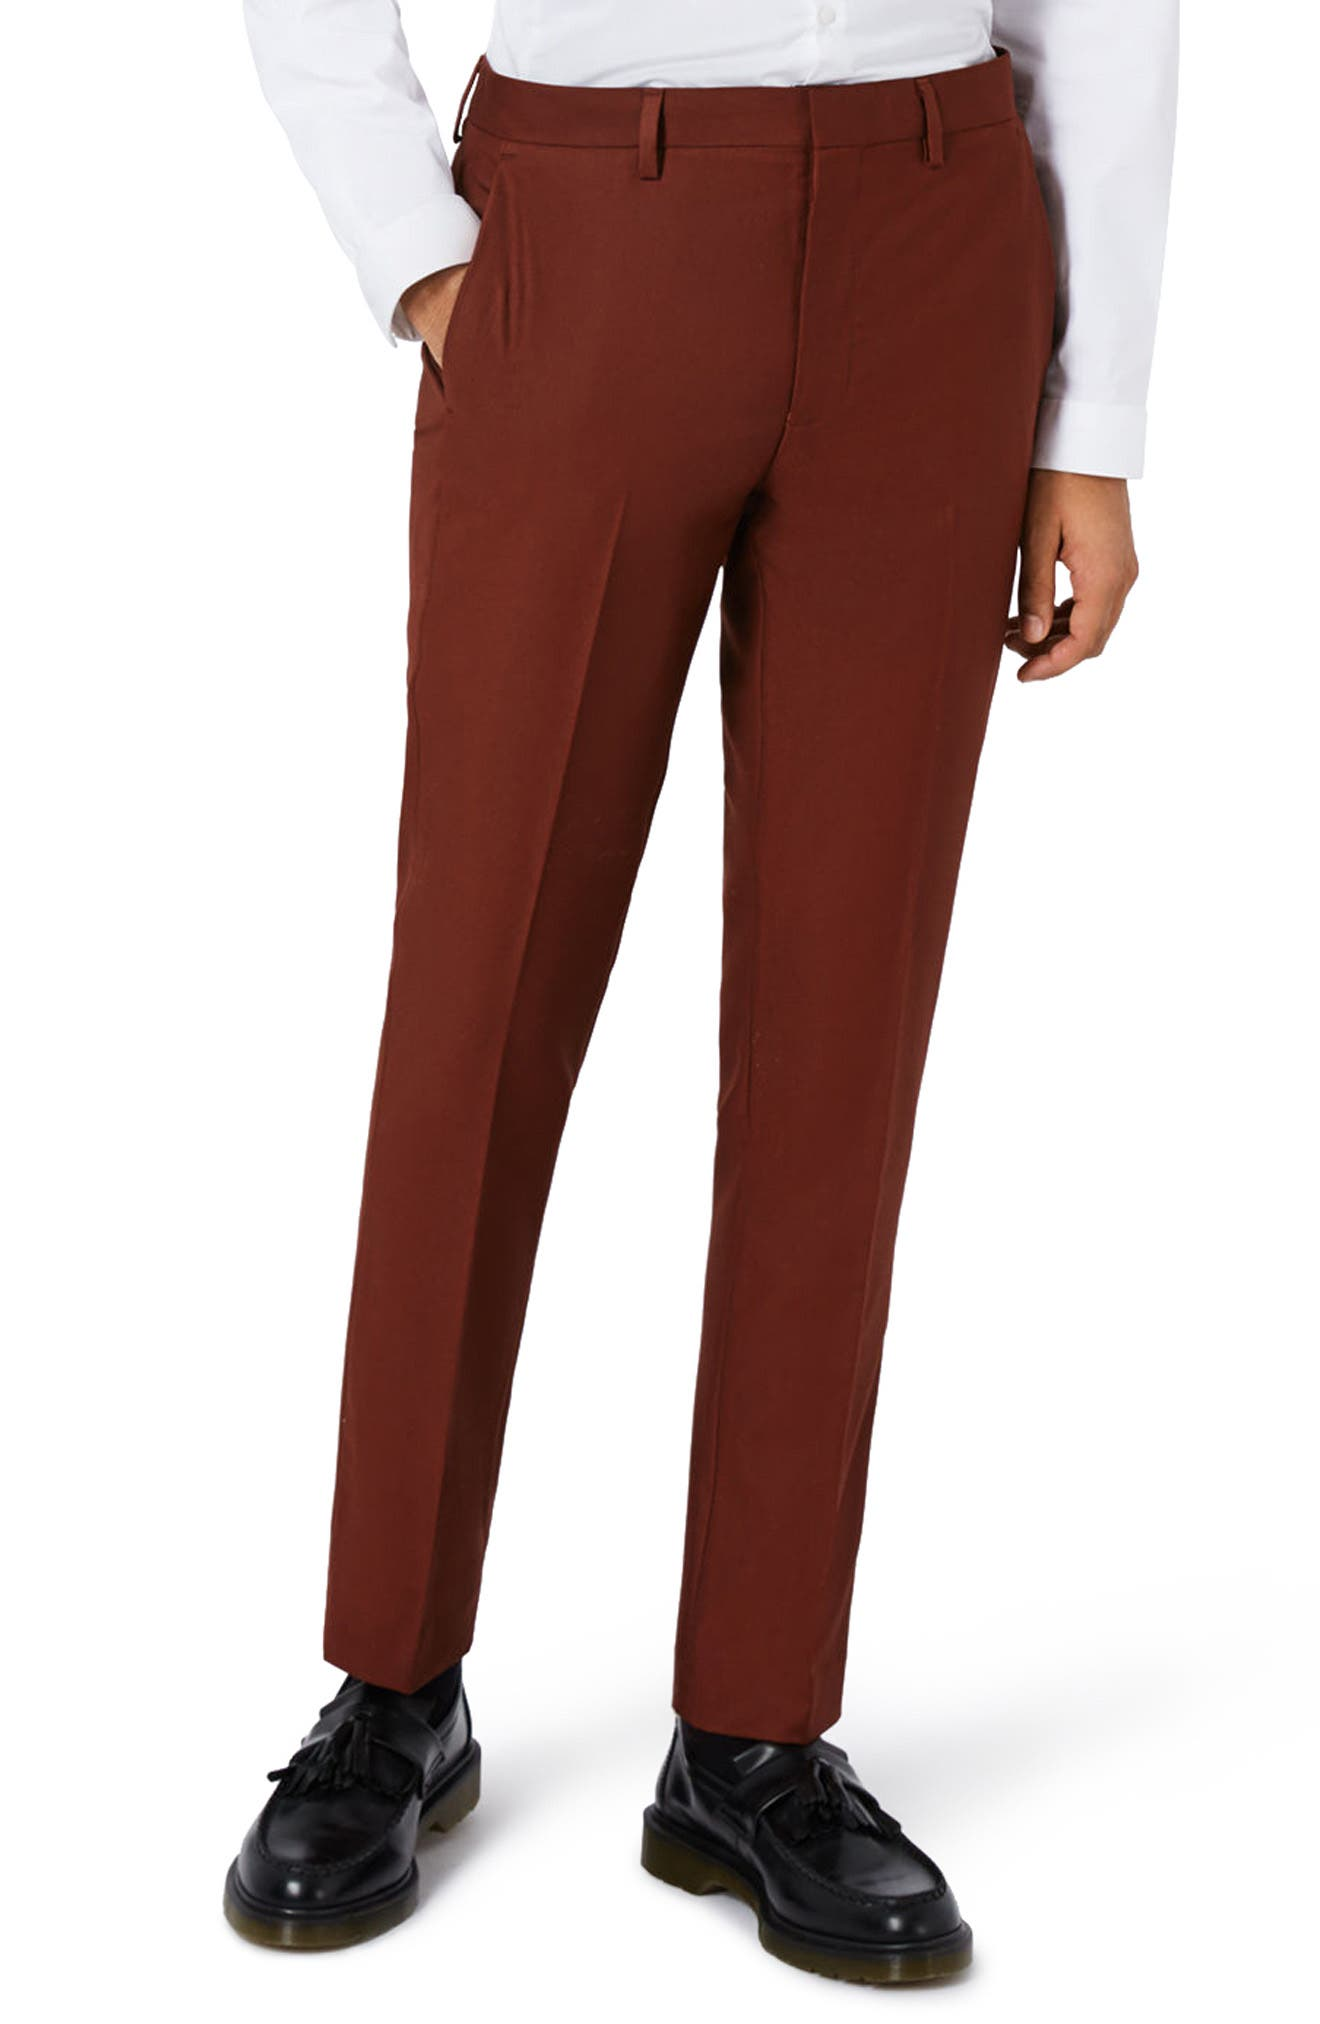 Alternate Image 1 Selected - Topman Skinny Fit Suit Trousers